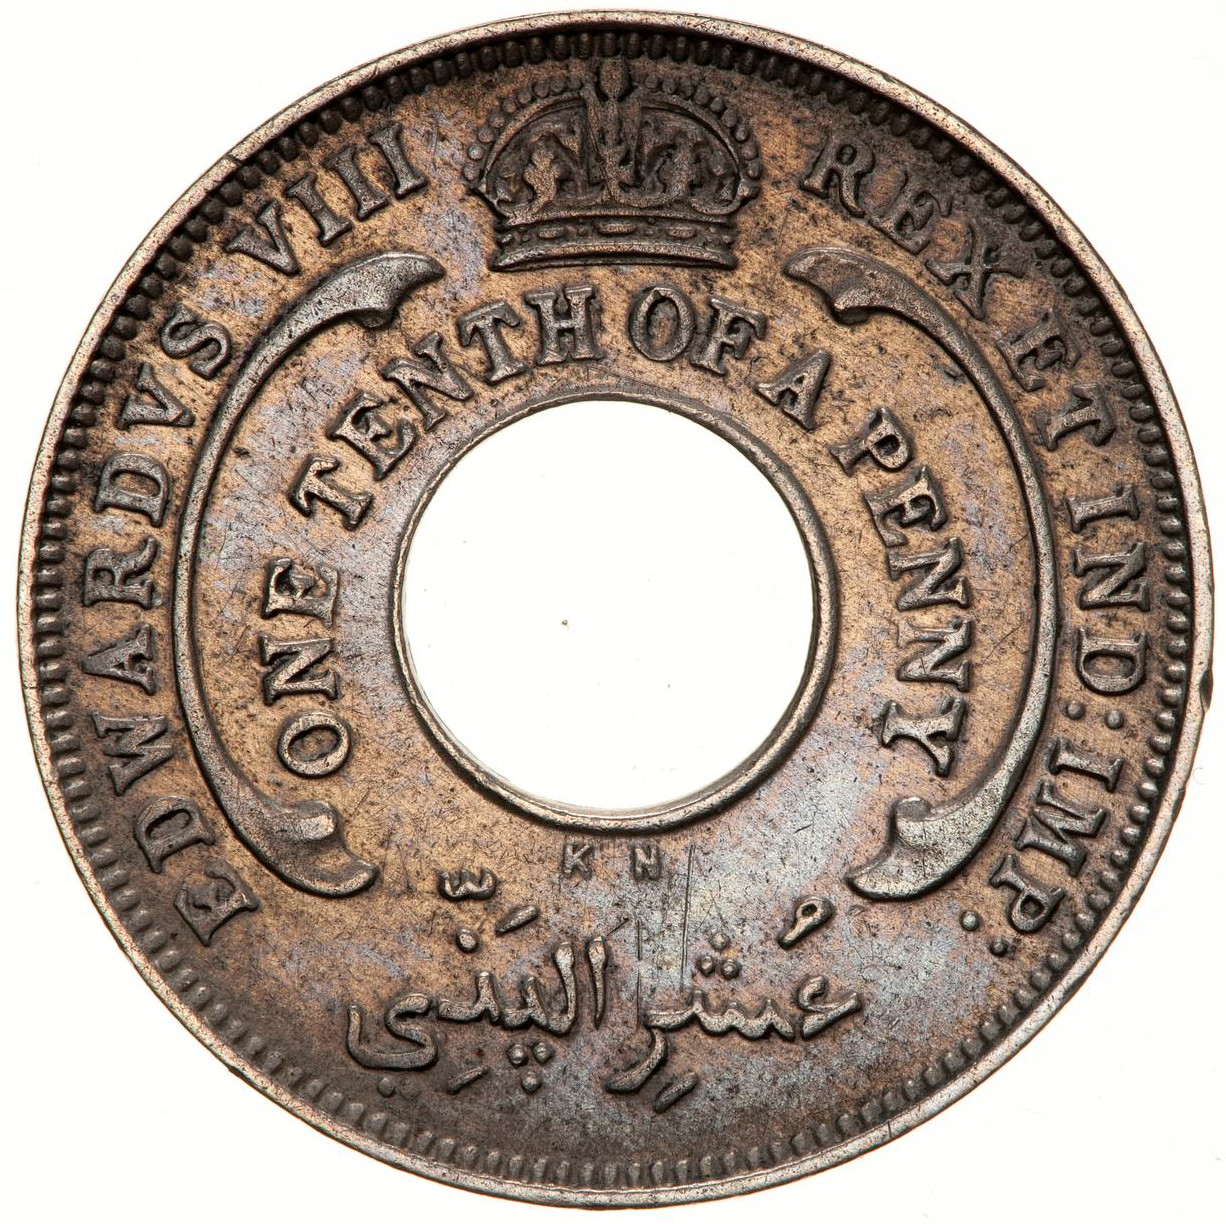 One-tenth Penny: Photo Coin - 1/10 Penny, British West Africa, 1936